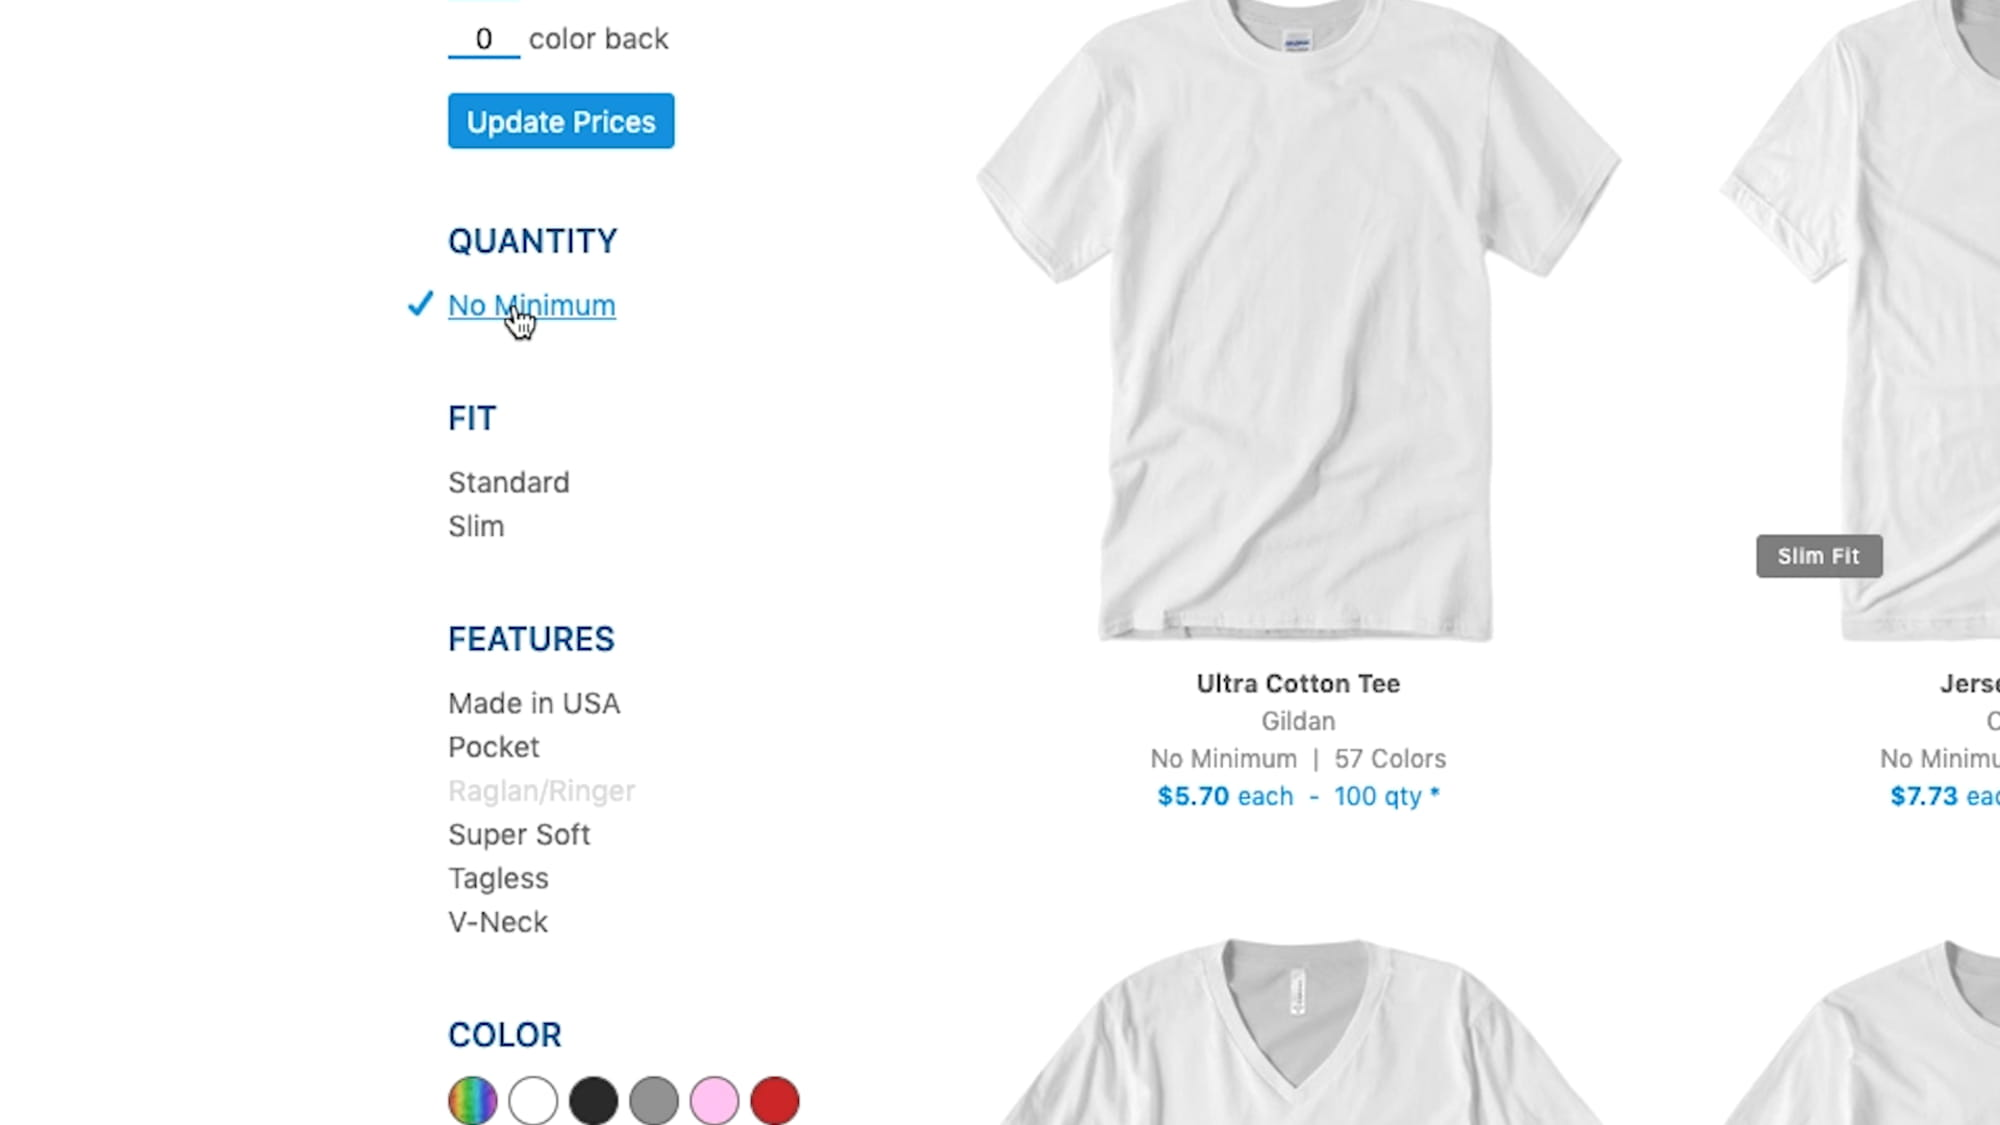 A screen shot of how to use the filters within the UberPrints product catalog.